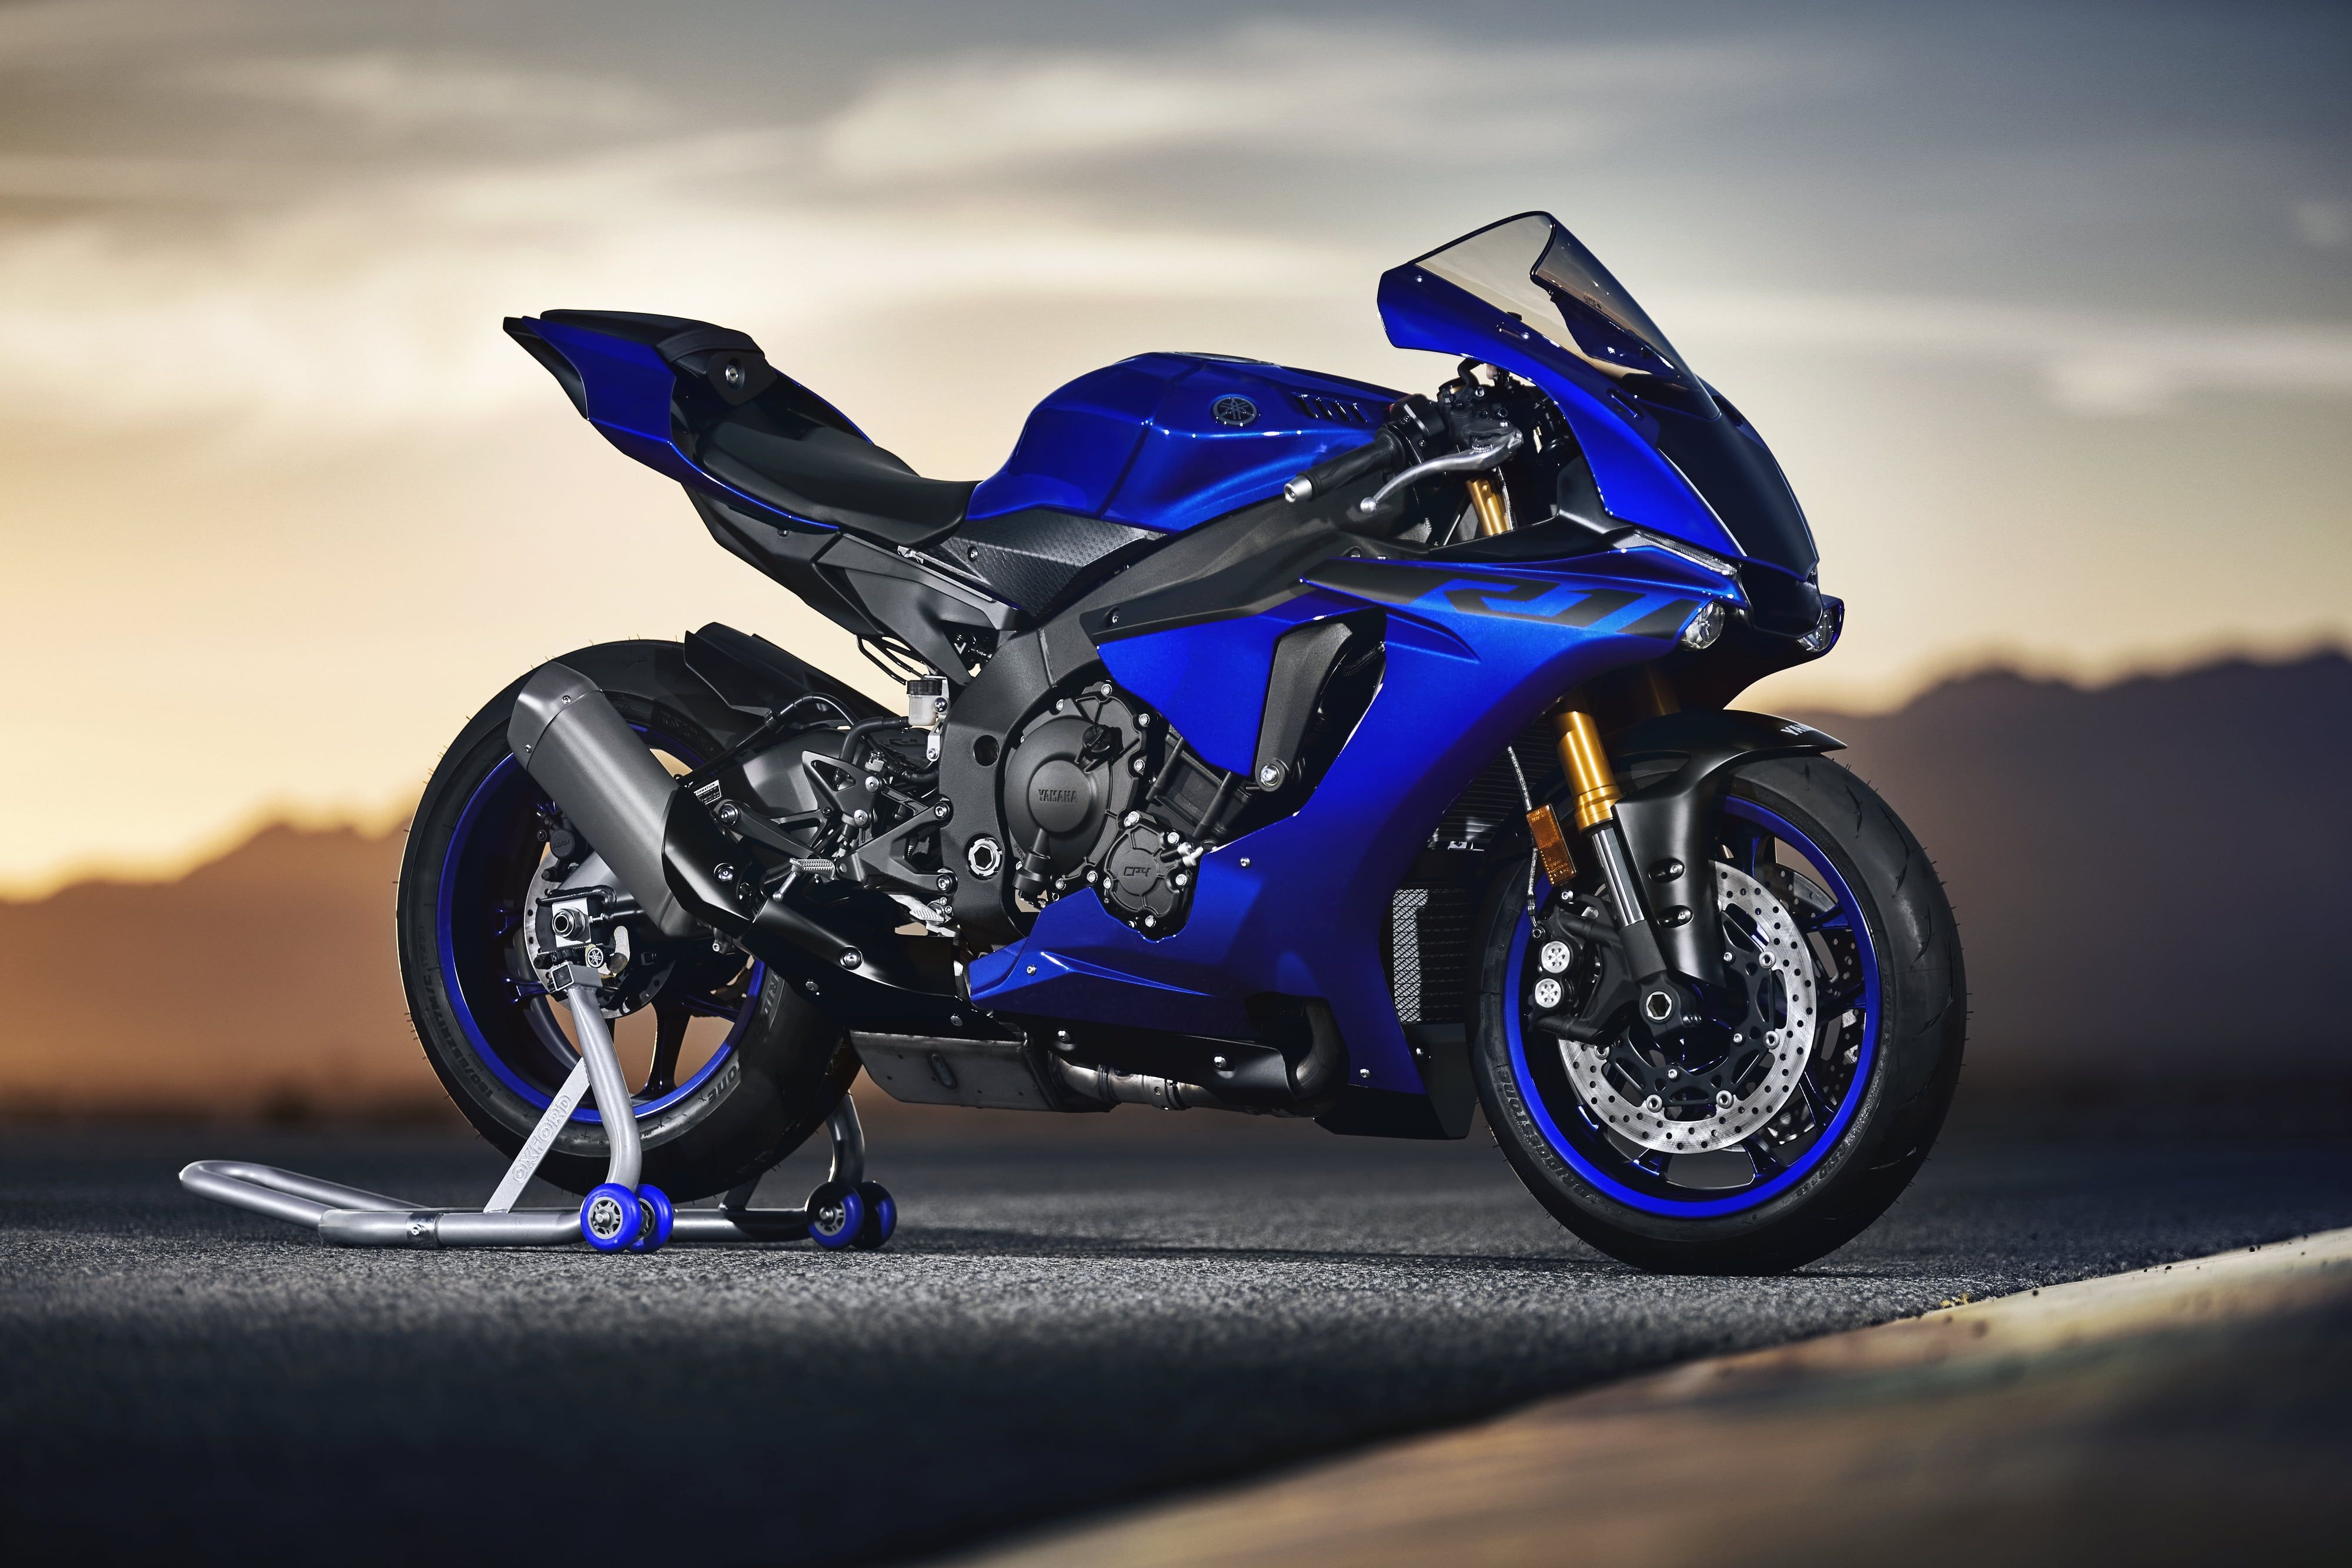 Motorcycle Yamaha Yzf R1 4k Wallpaper Hdwallpaper Desktop In